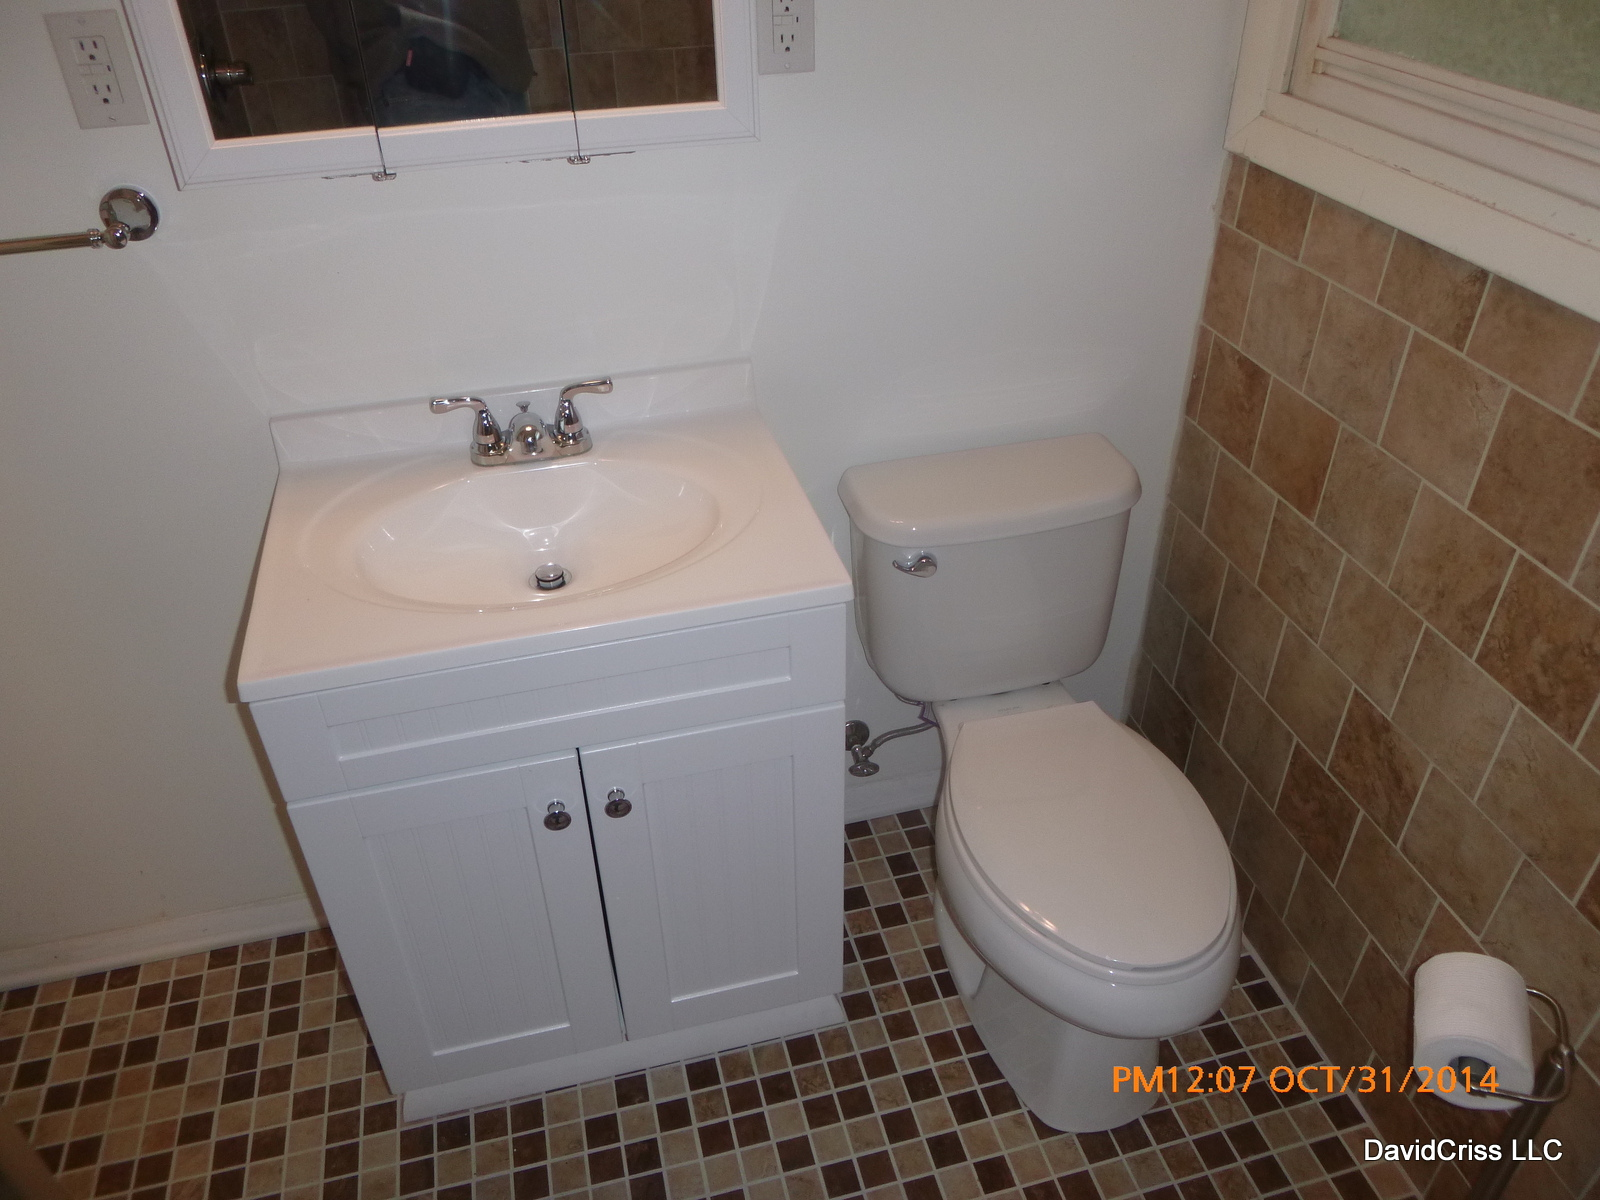 Small Bathroom Remodel - How to remodel an old bathroom